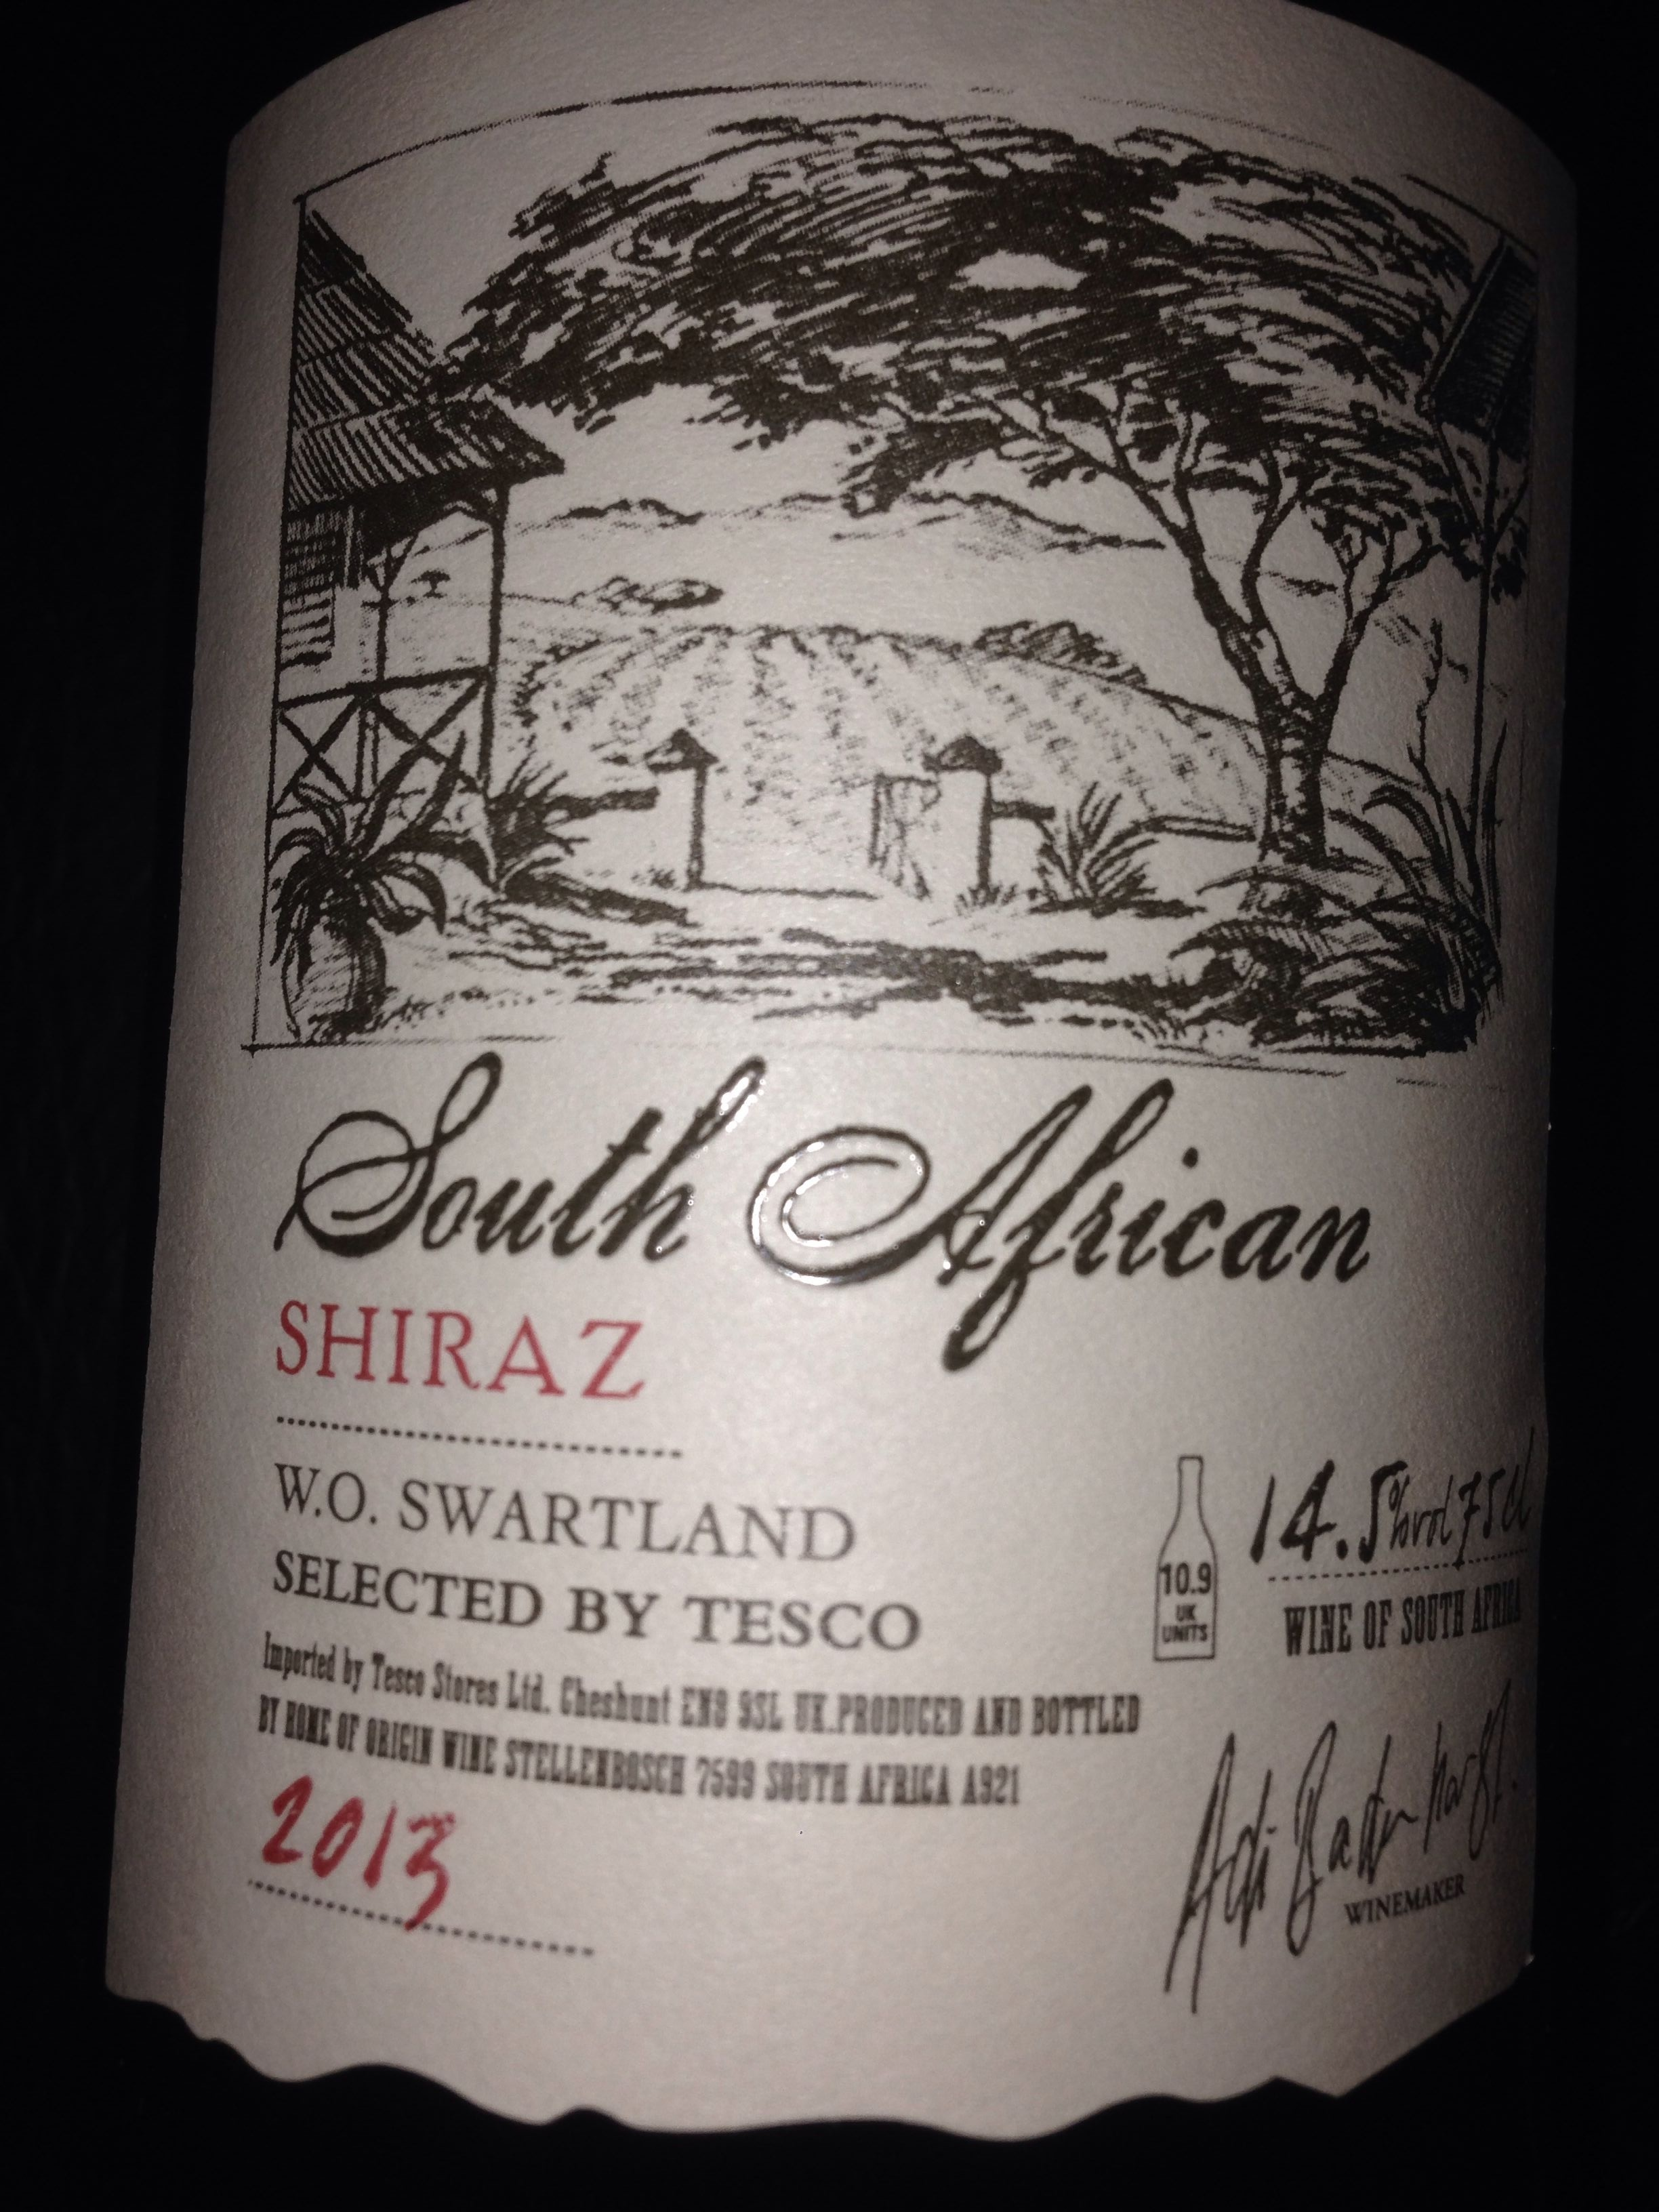 South African Shiraz - Product